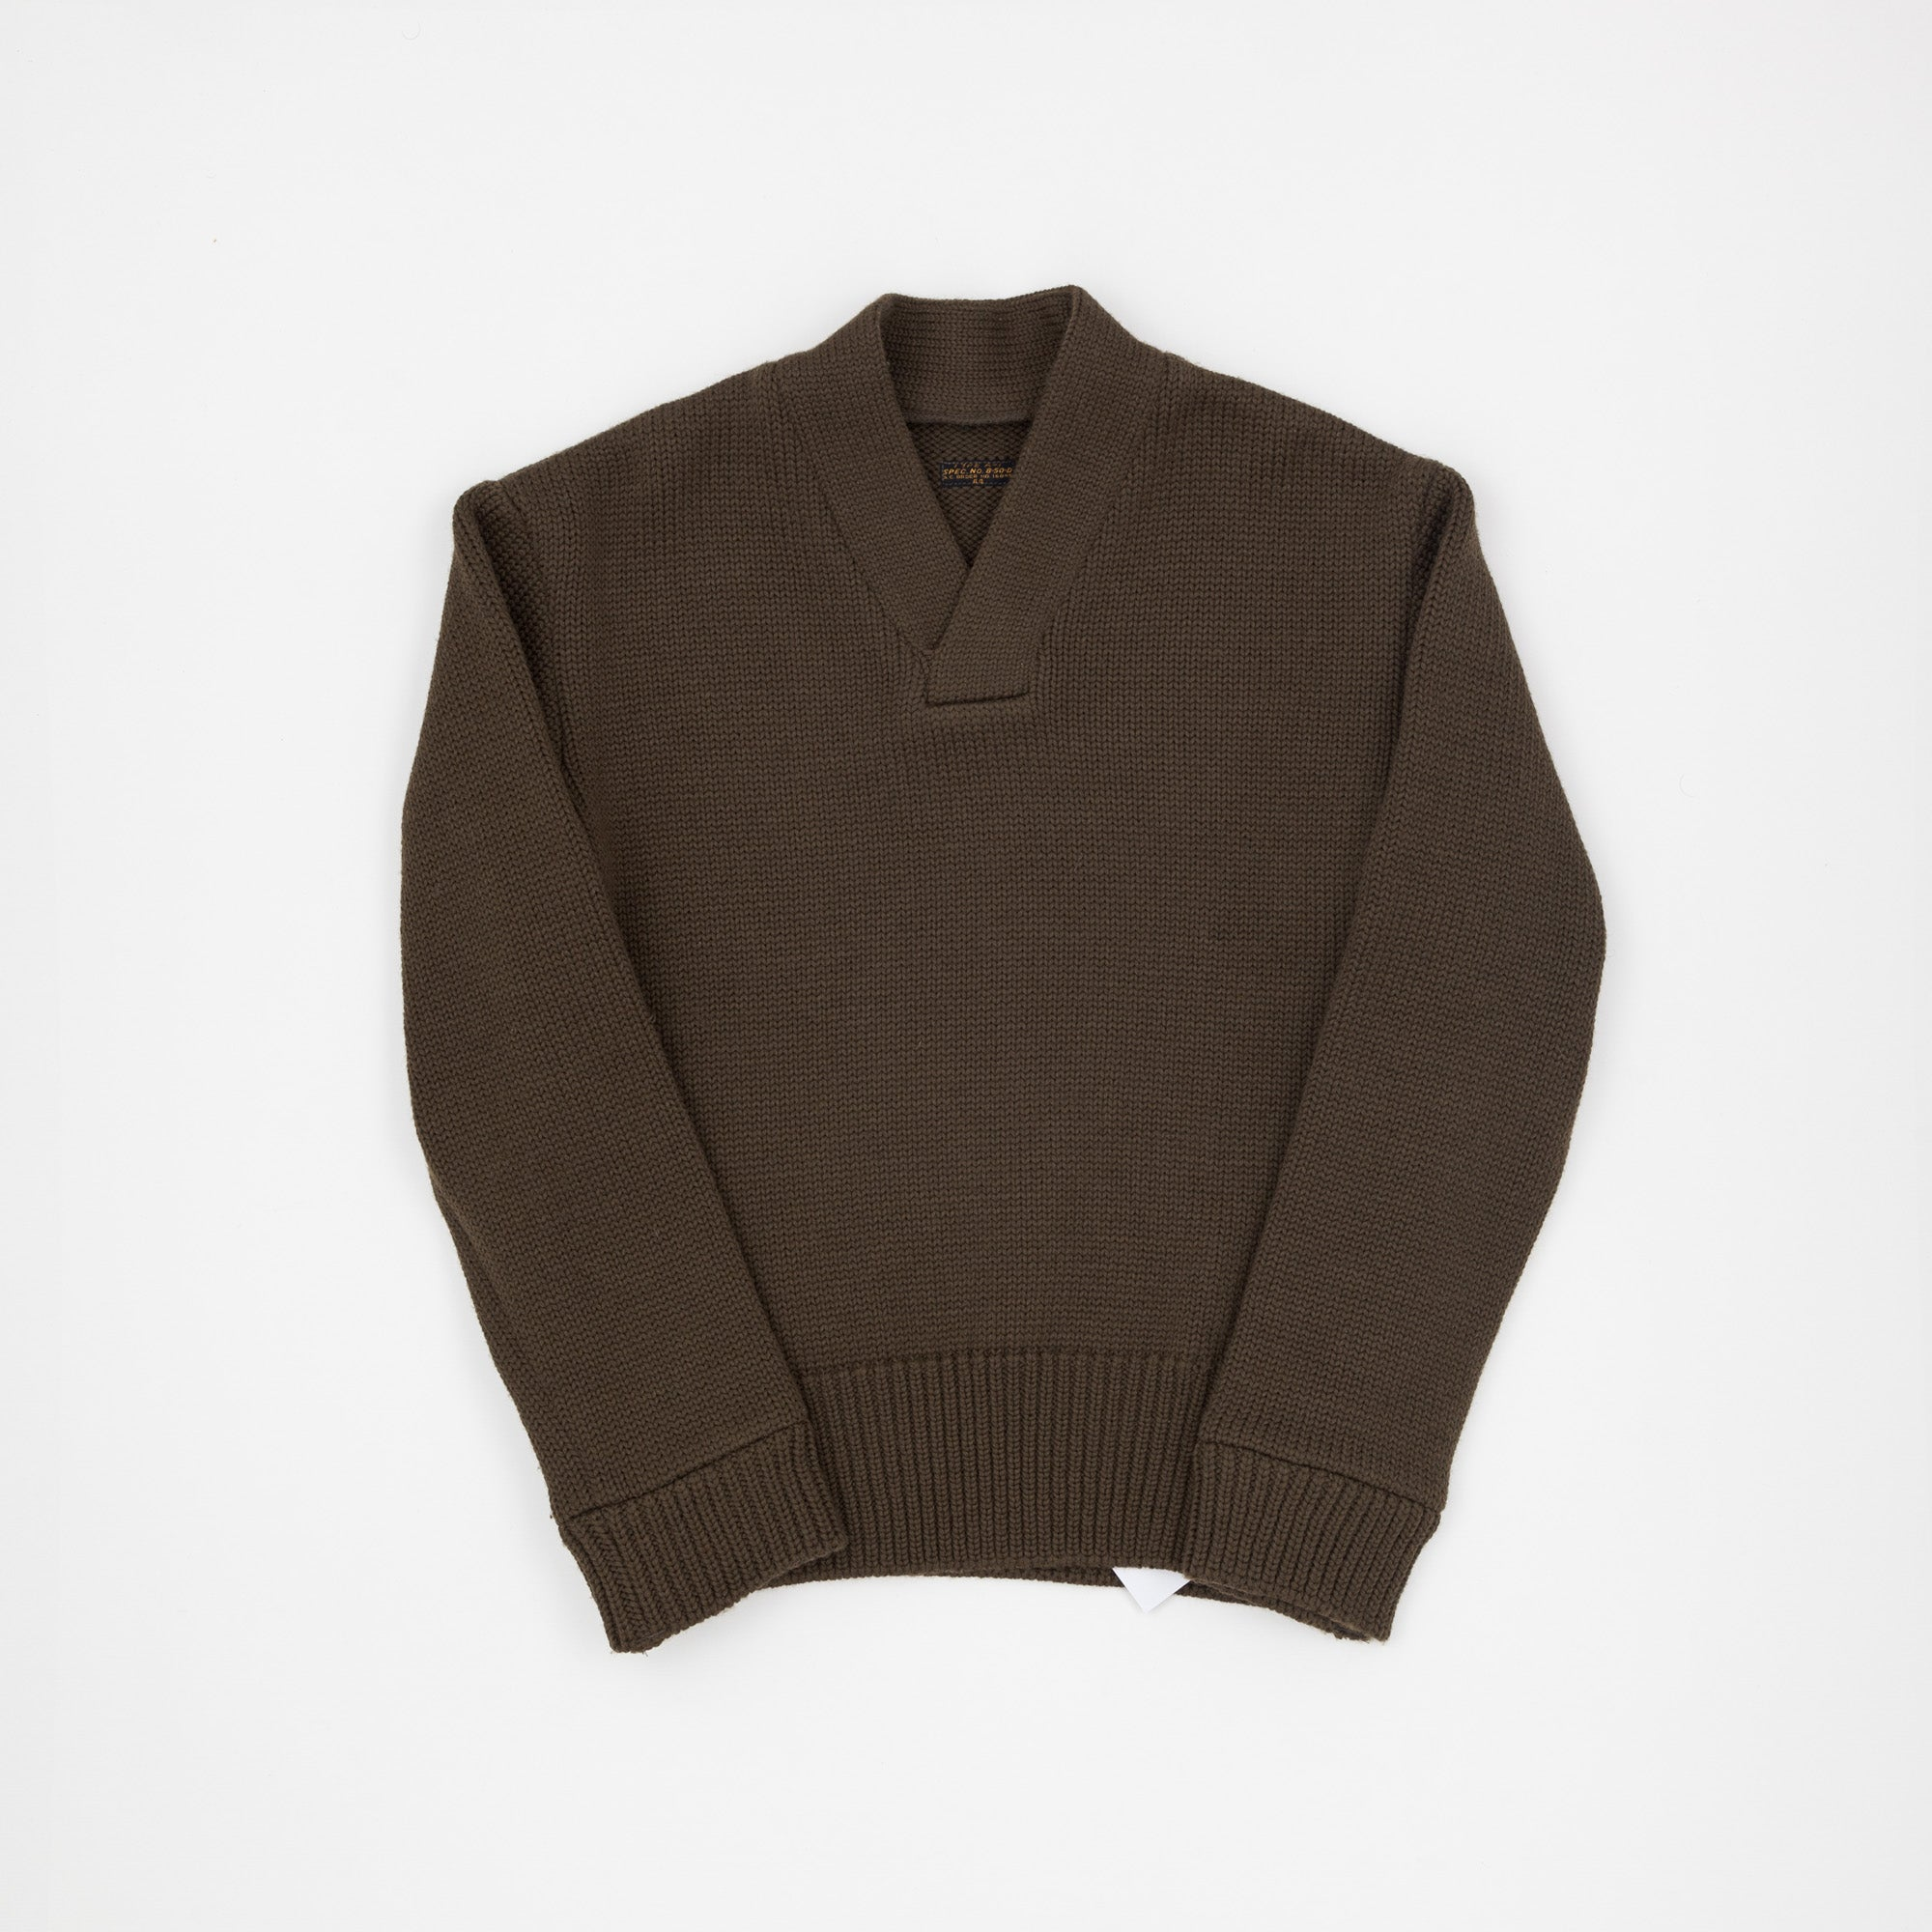 The Real McCoy's Type A-1 Knitted Sweater